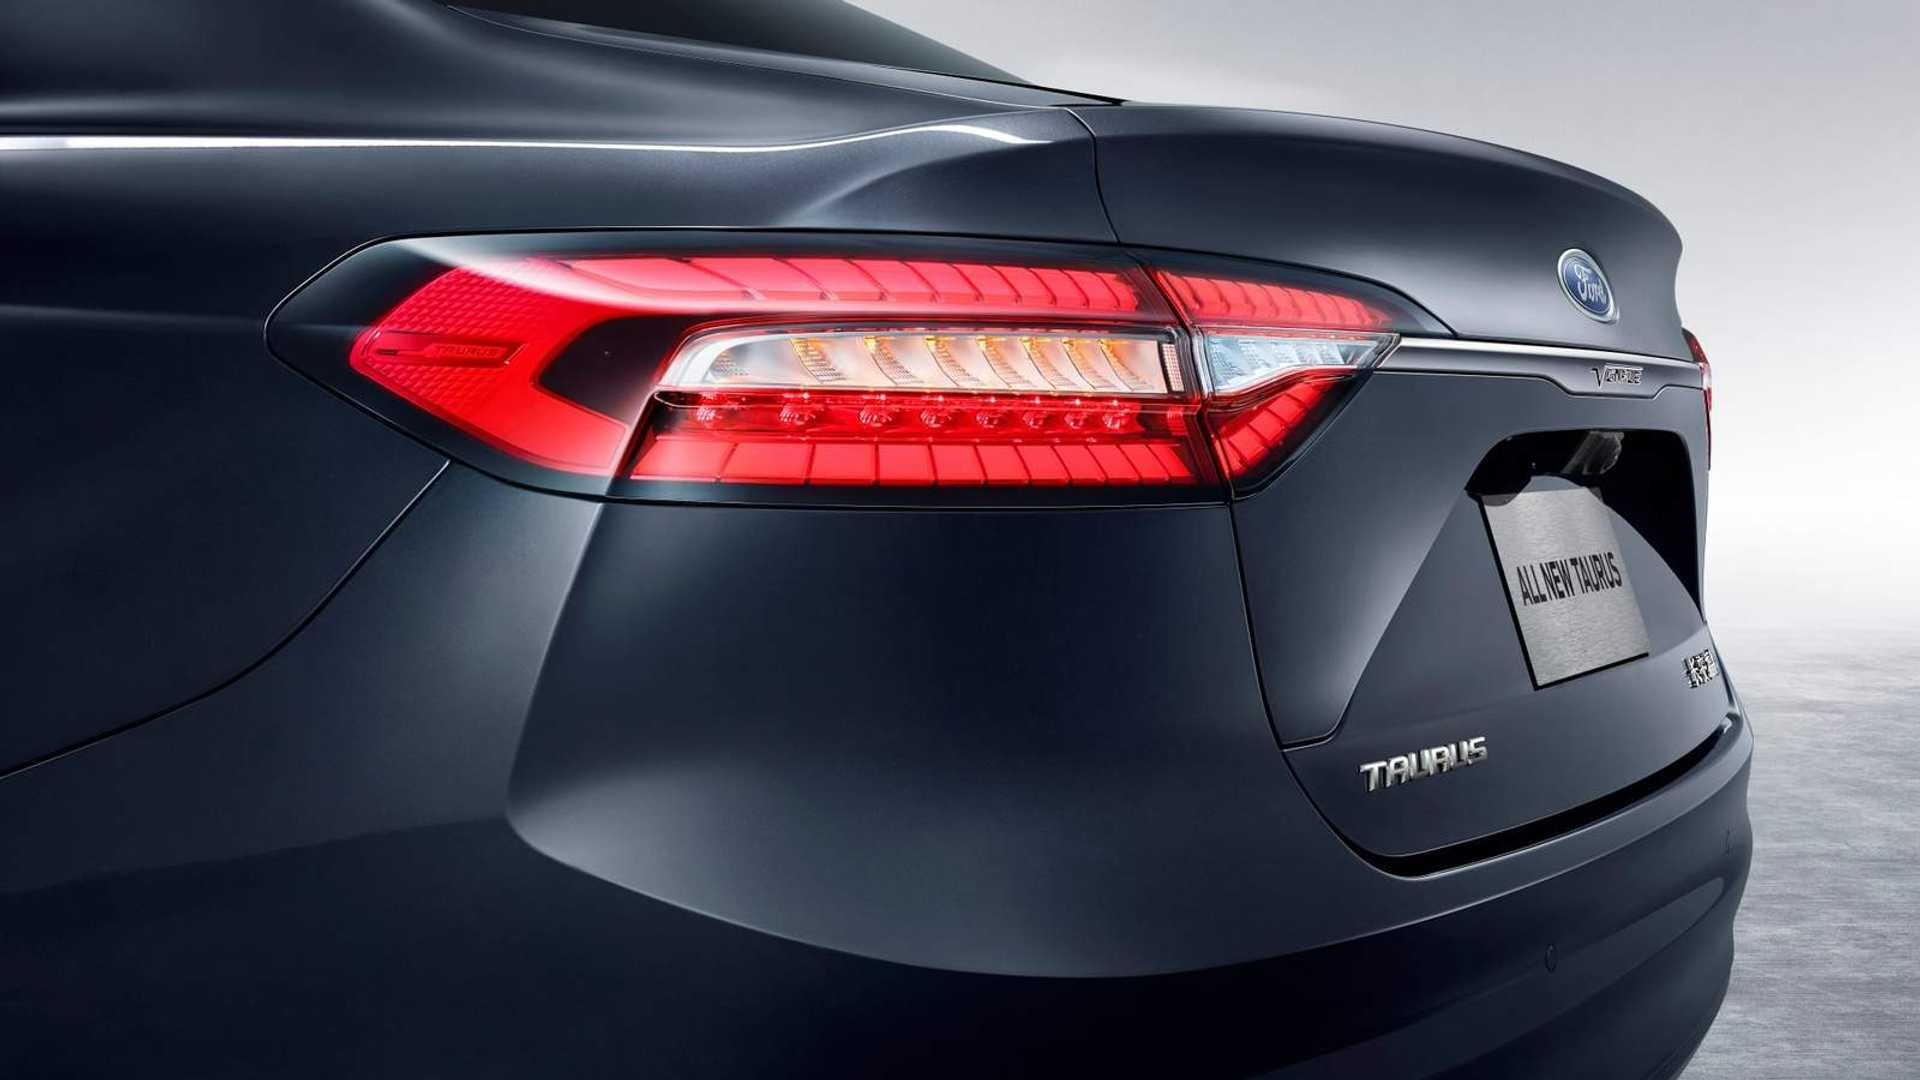 Ford Updates Next Gen Taurus Sold In China Months After Nameplate